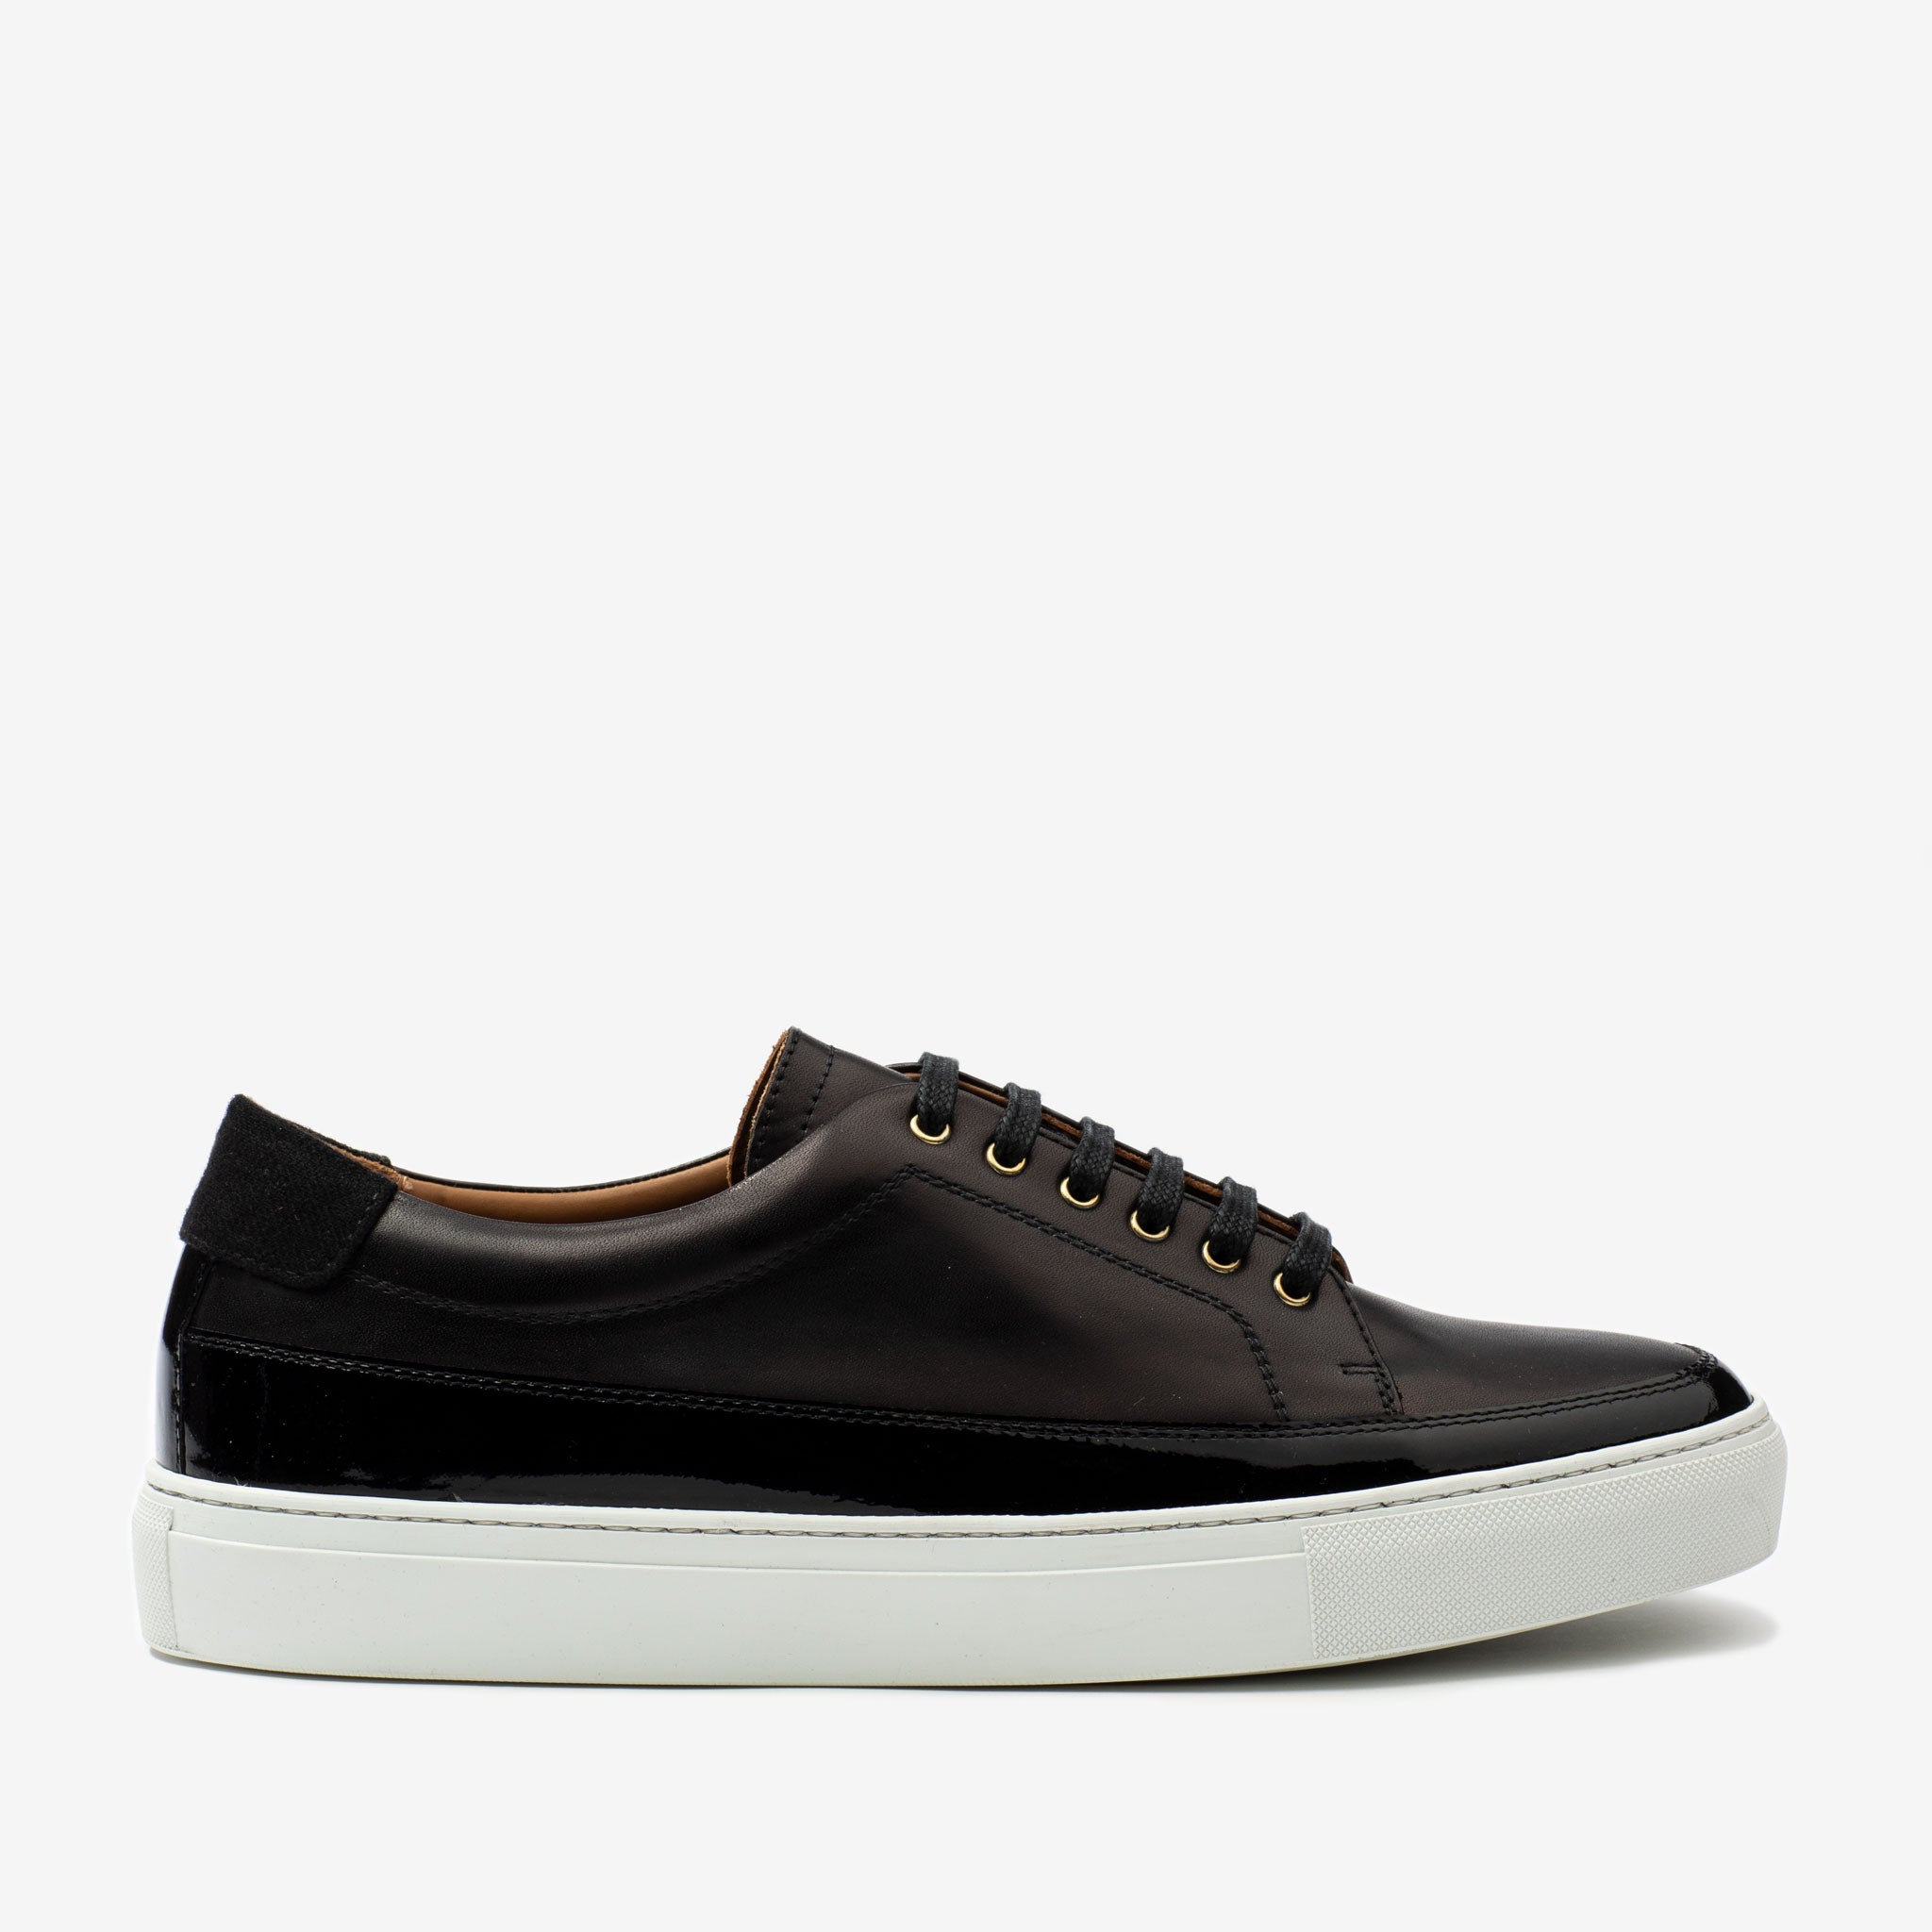 Fifth Ave Sneaker in Black Side Profile